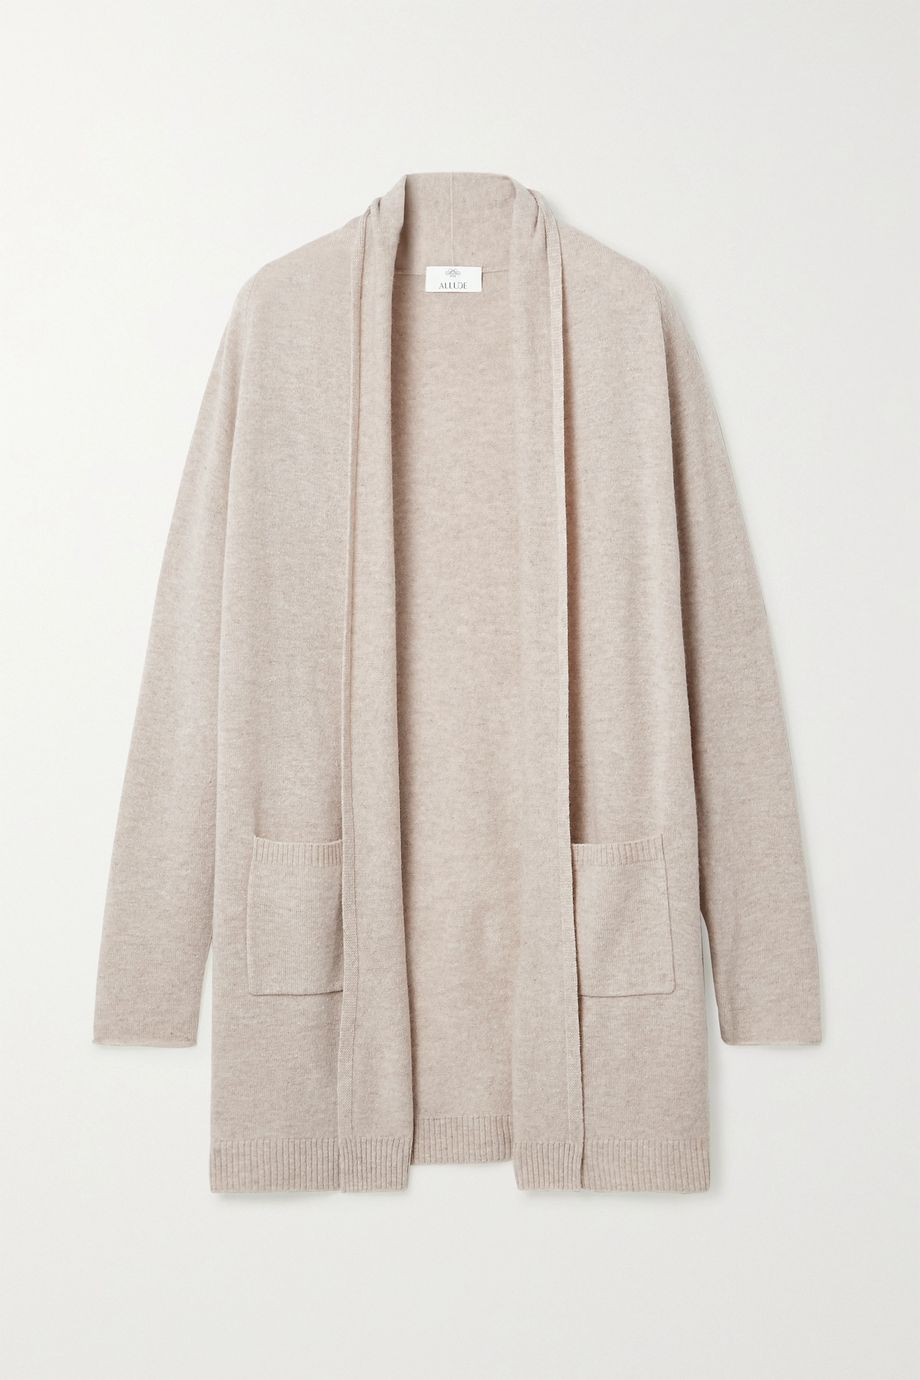 Allude Wool and cashmere-blend cardigan